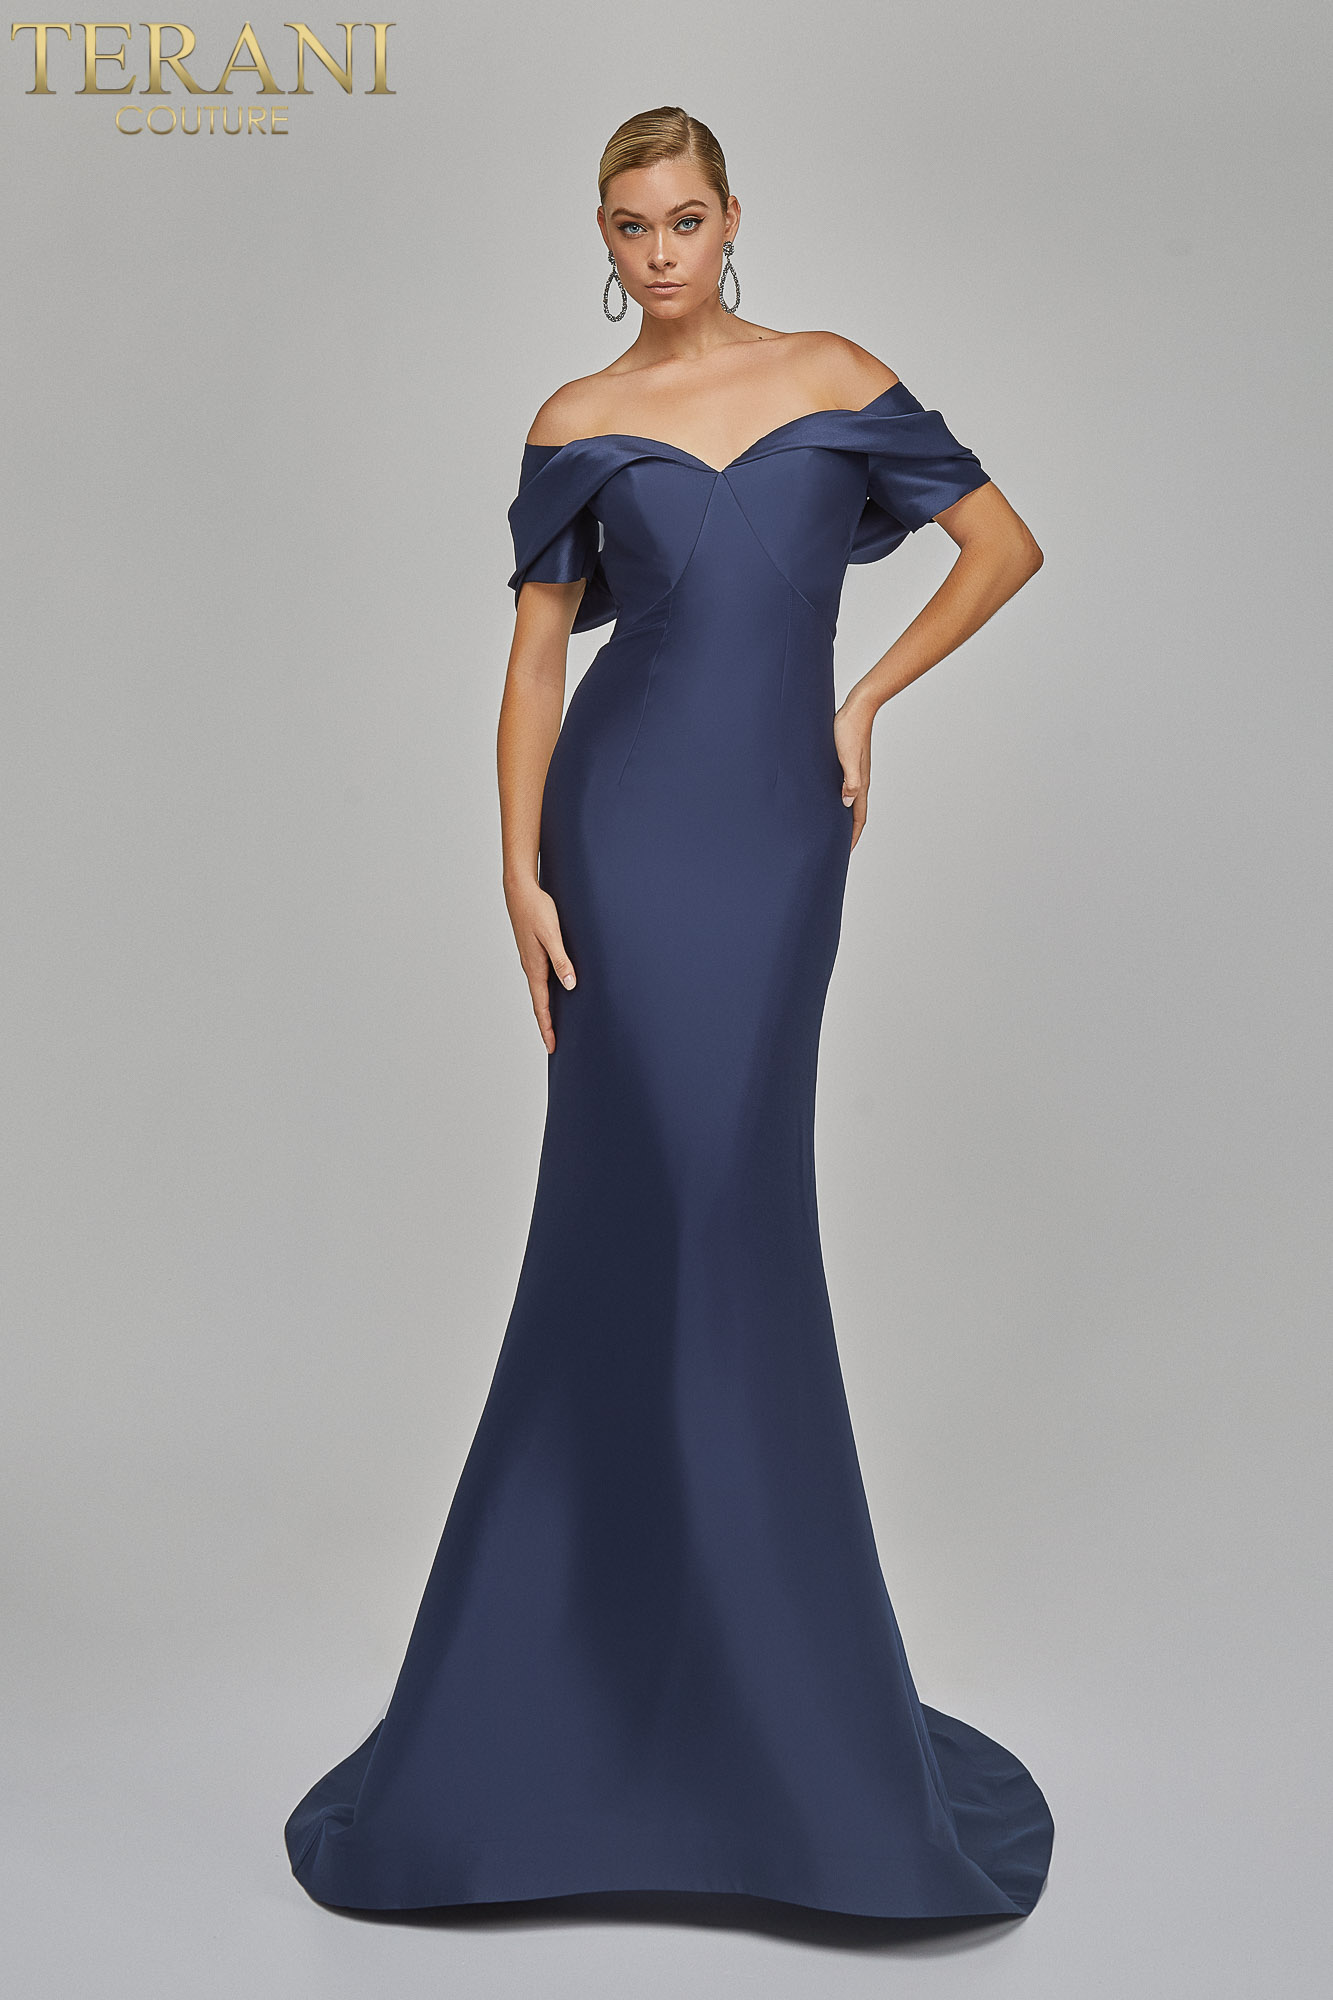 Eye catching off shoulder collar drapes over a plain stretch evening Mikado gown with tail.